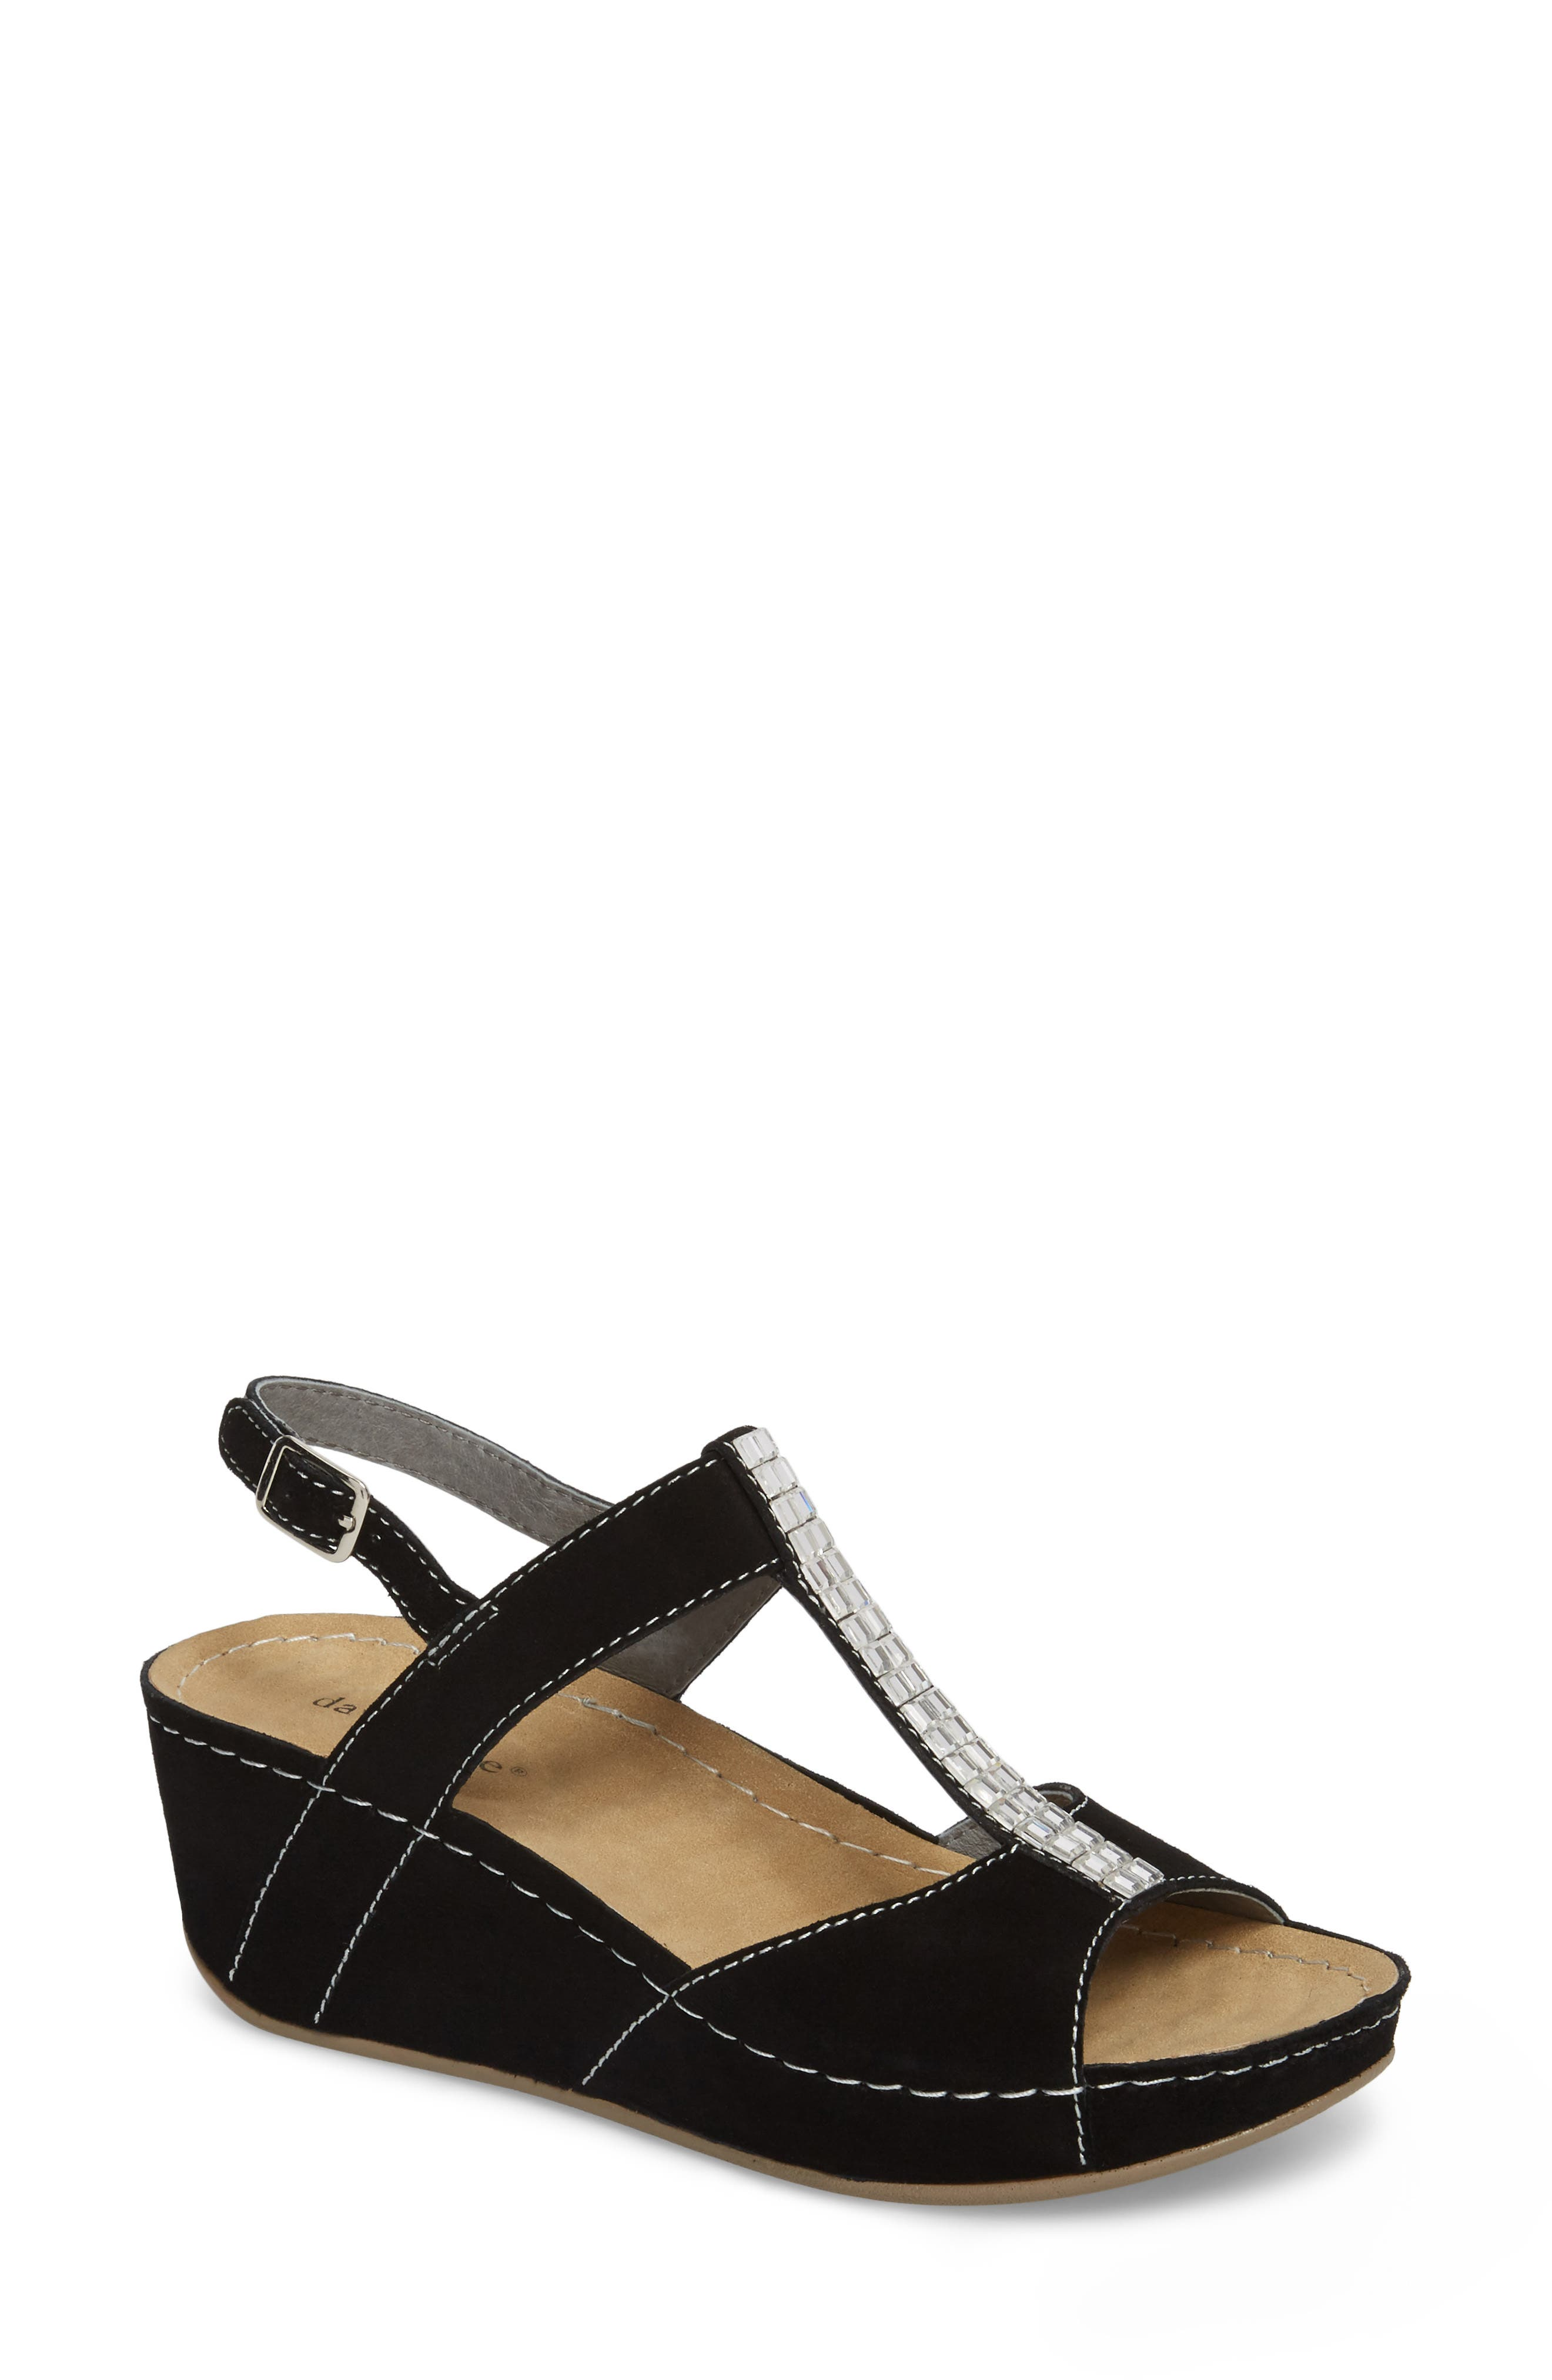 DAVID TATE, Bubbly Embellished T-Strap Wedge Sandal, Main thumbnail 1, color, BLACK SUEDE